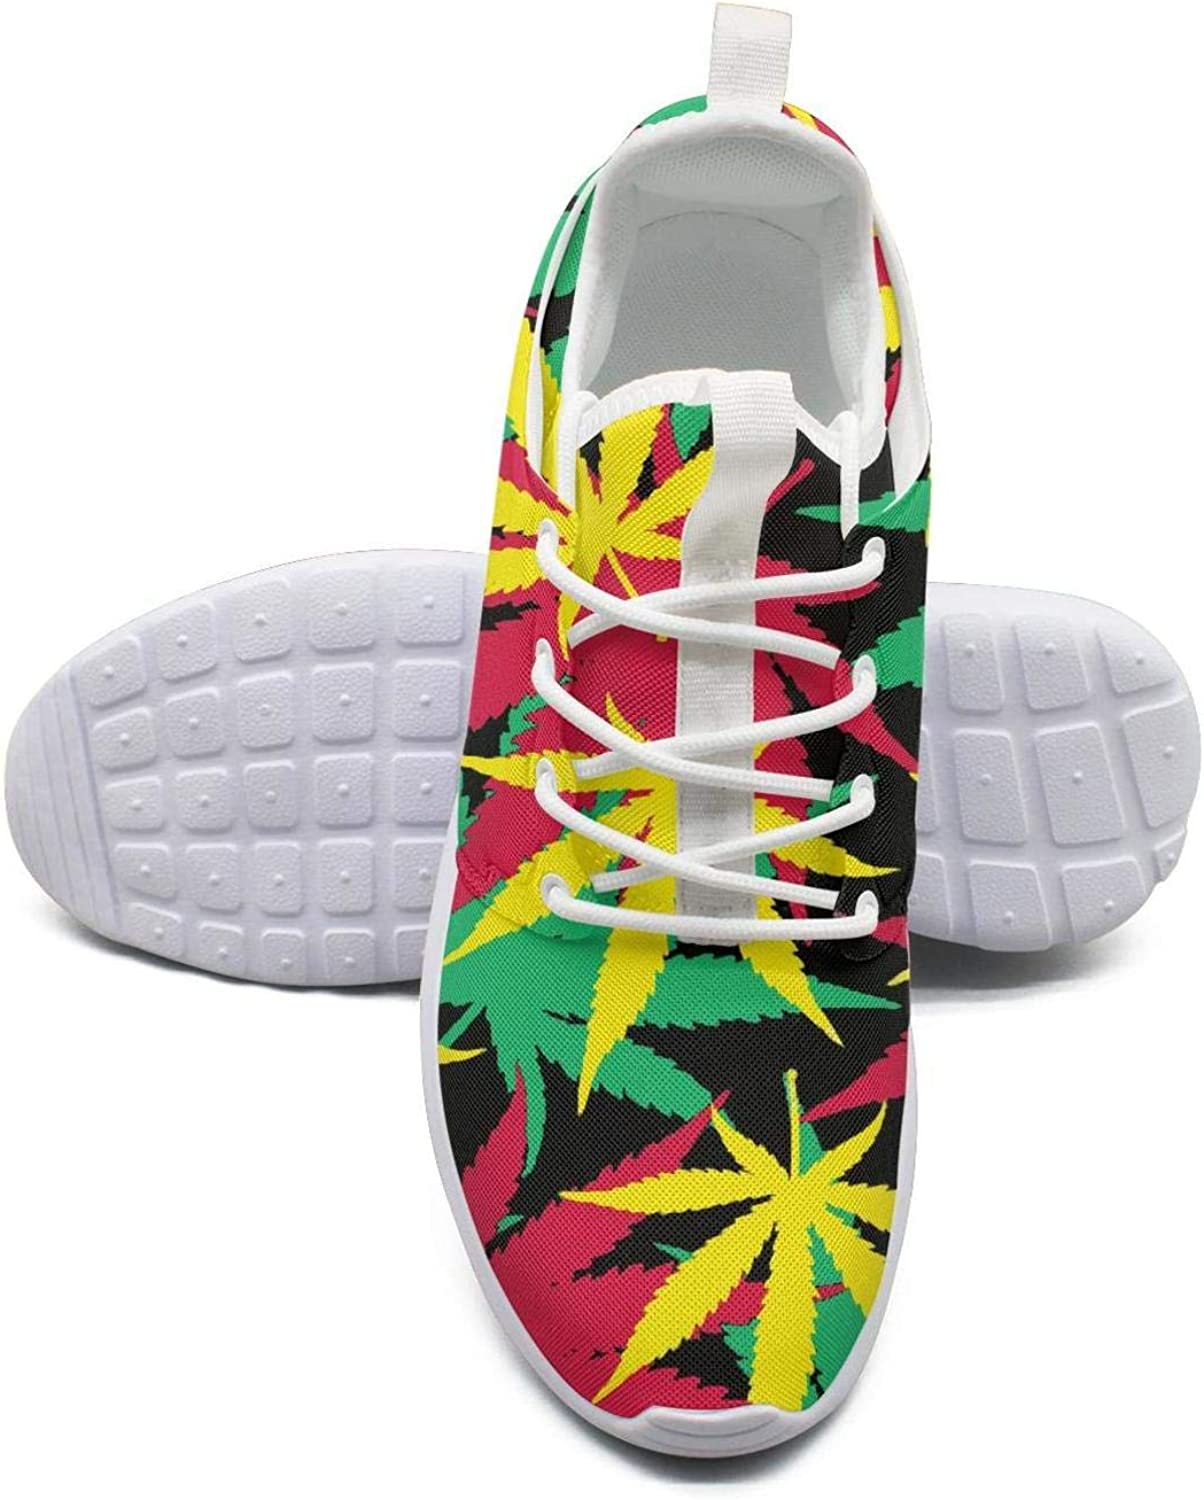 Gjsonmv Weed Marijuana Leaves Cannabis mesh Lightweight shoes Women Fashion Sports Gym Sneakers shoes